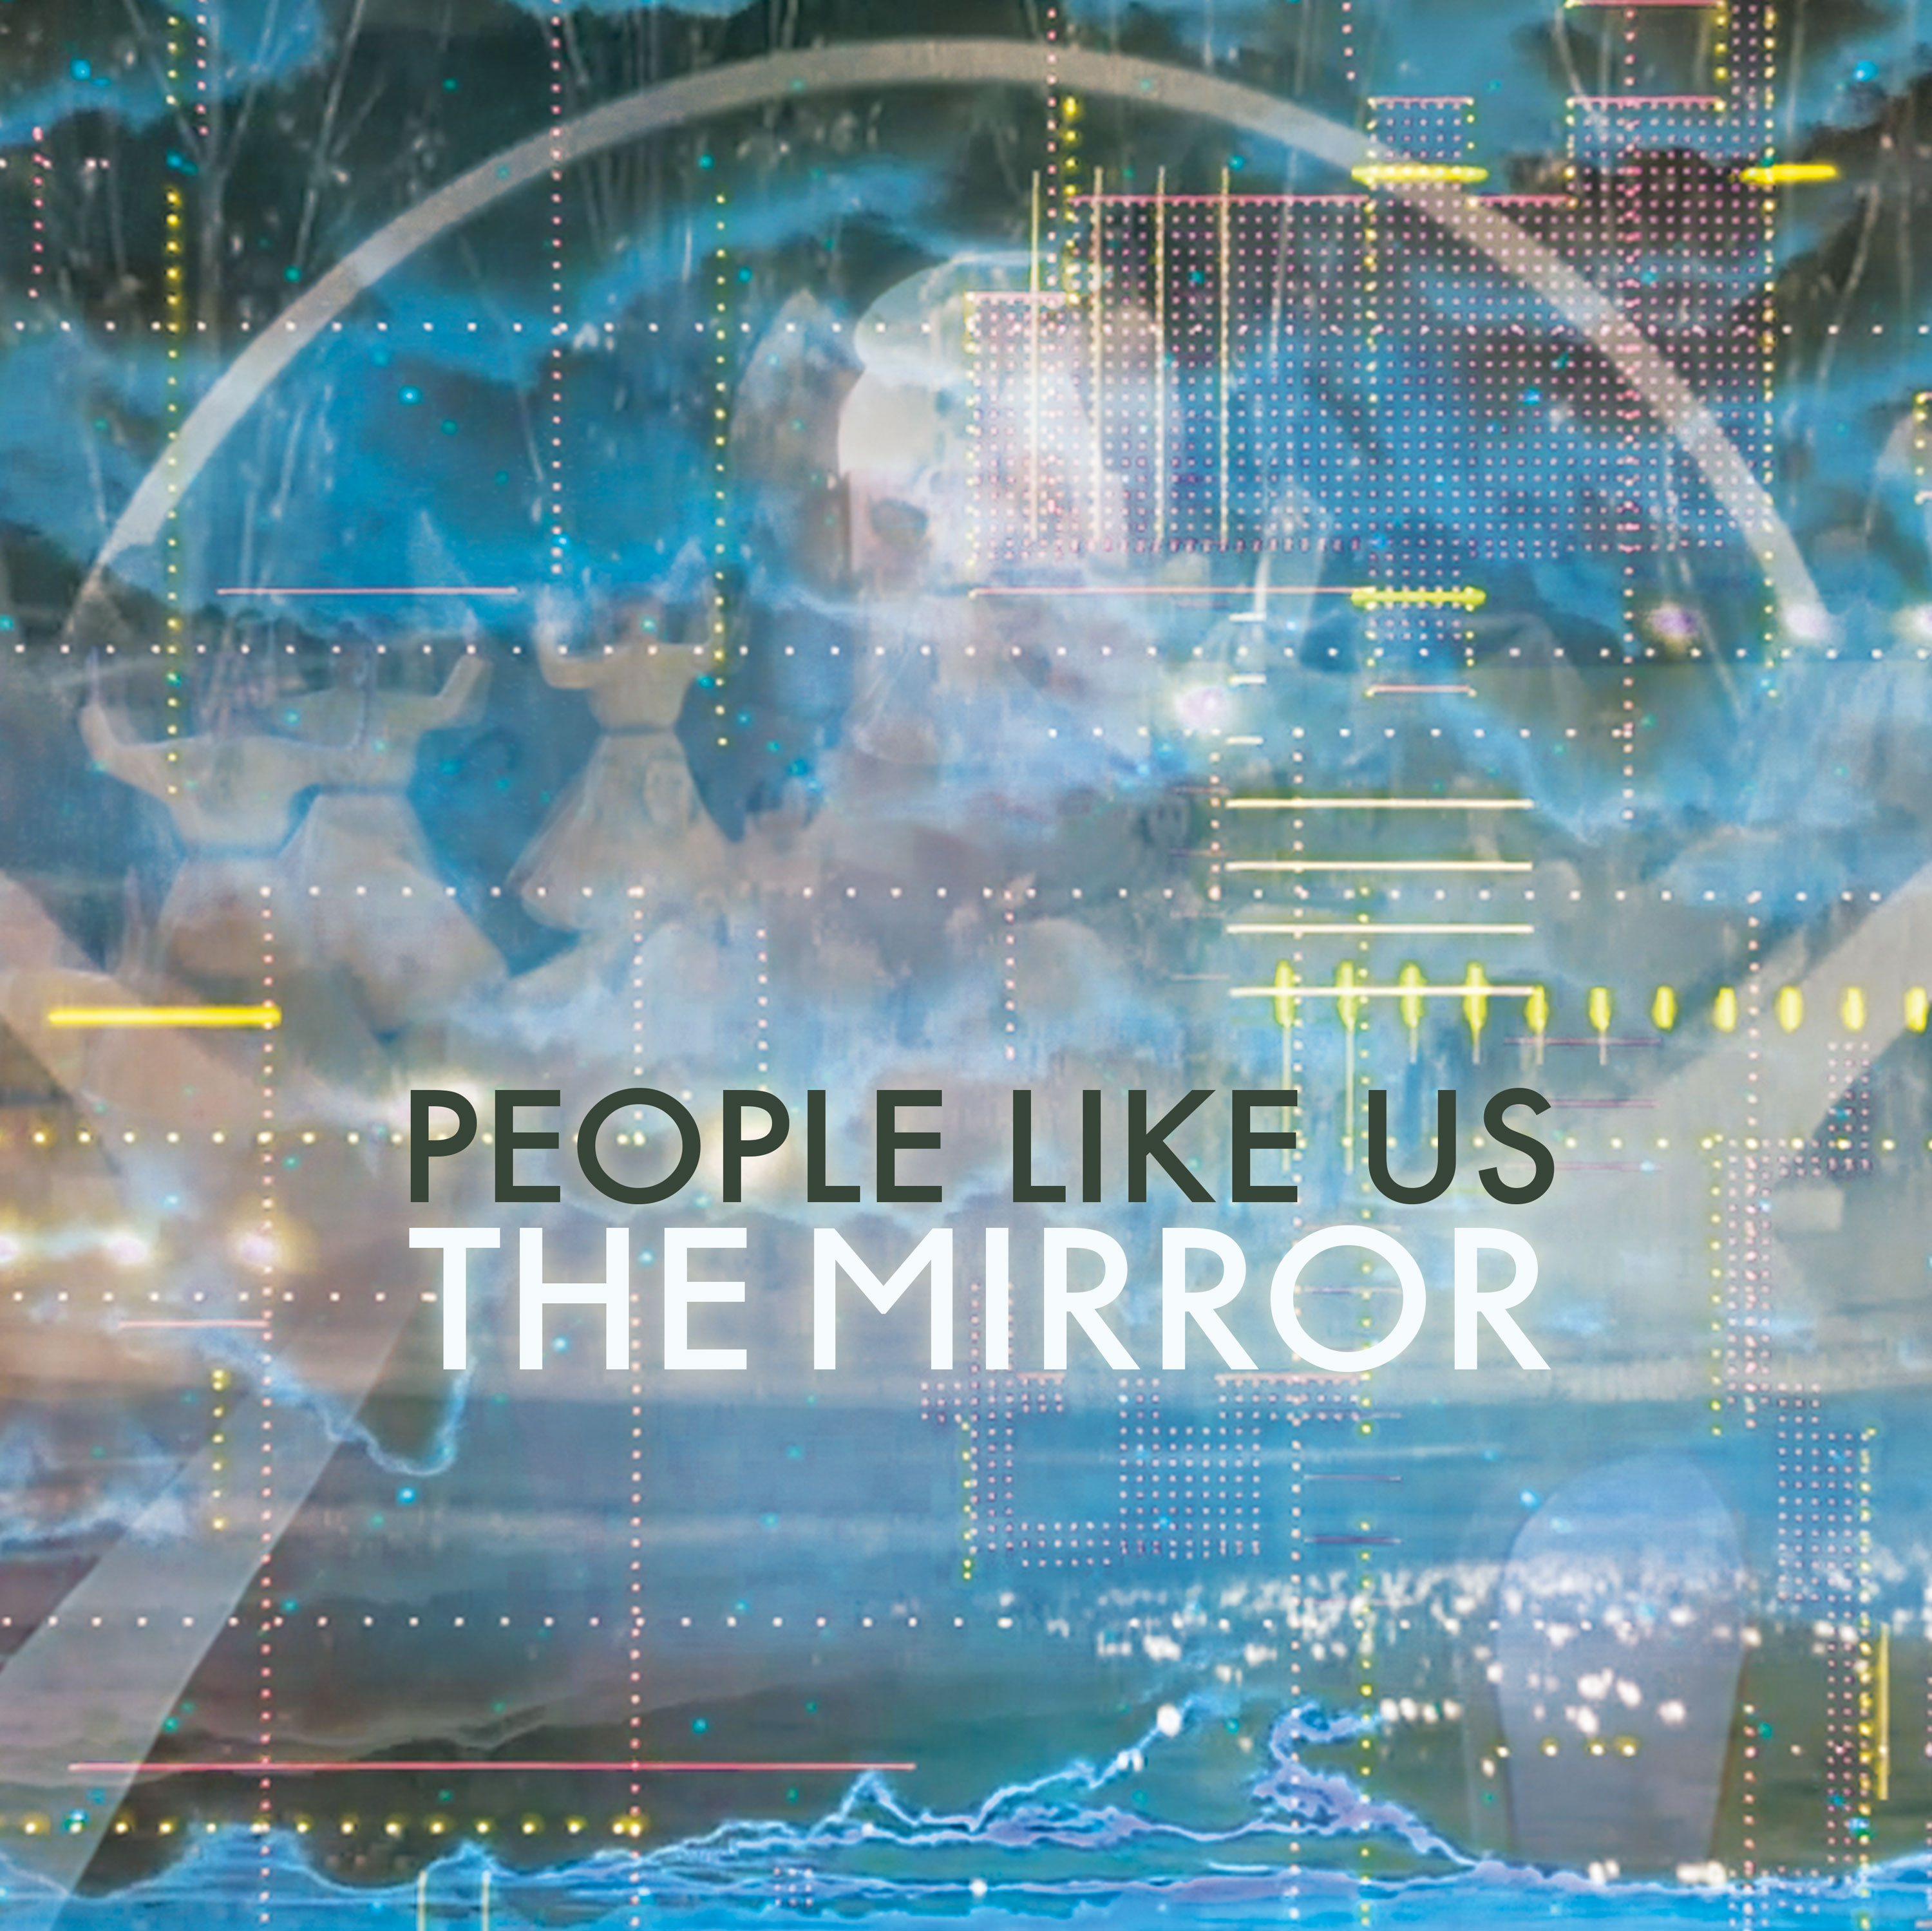 "Cover art for the People Like Us album ""The Mirror"", by Vicki Bennet."